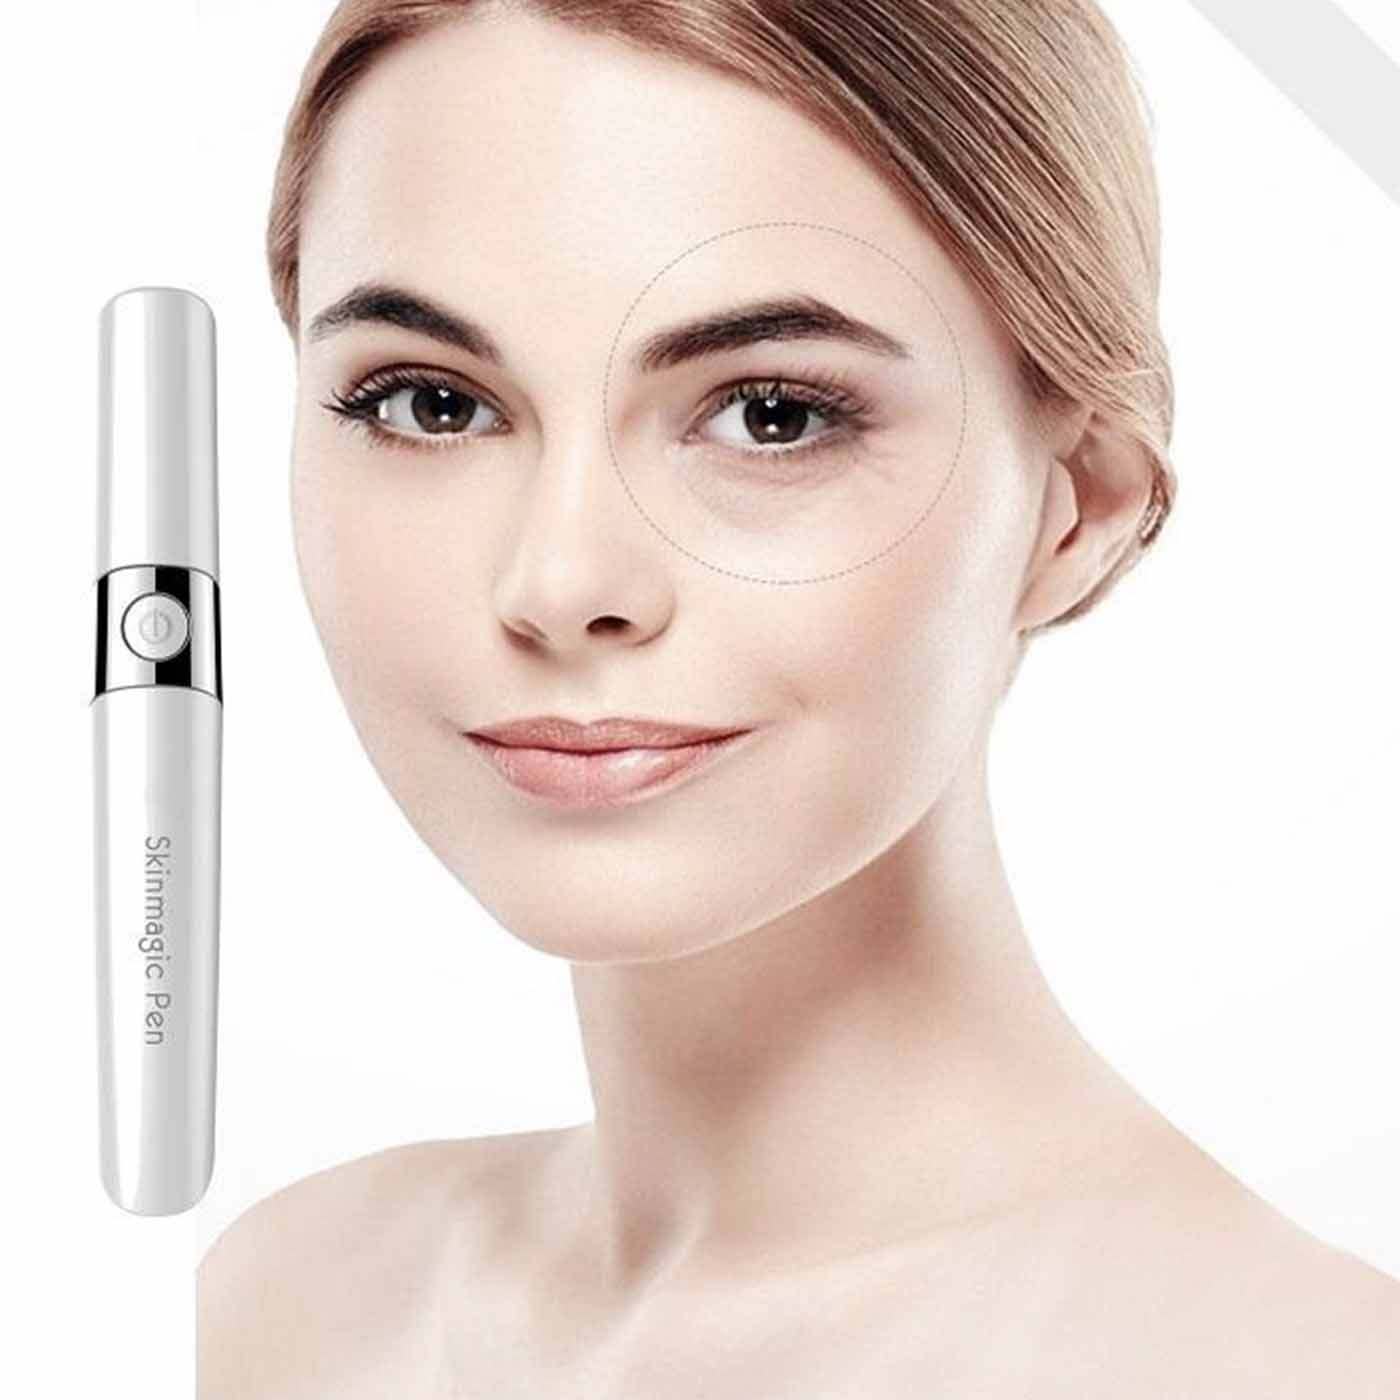 SkinMagic Pen with Sonic and LED for Eyes and Lips | Julie Lindh Skin Expert